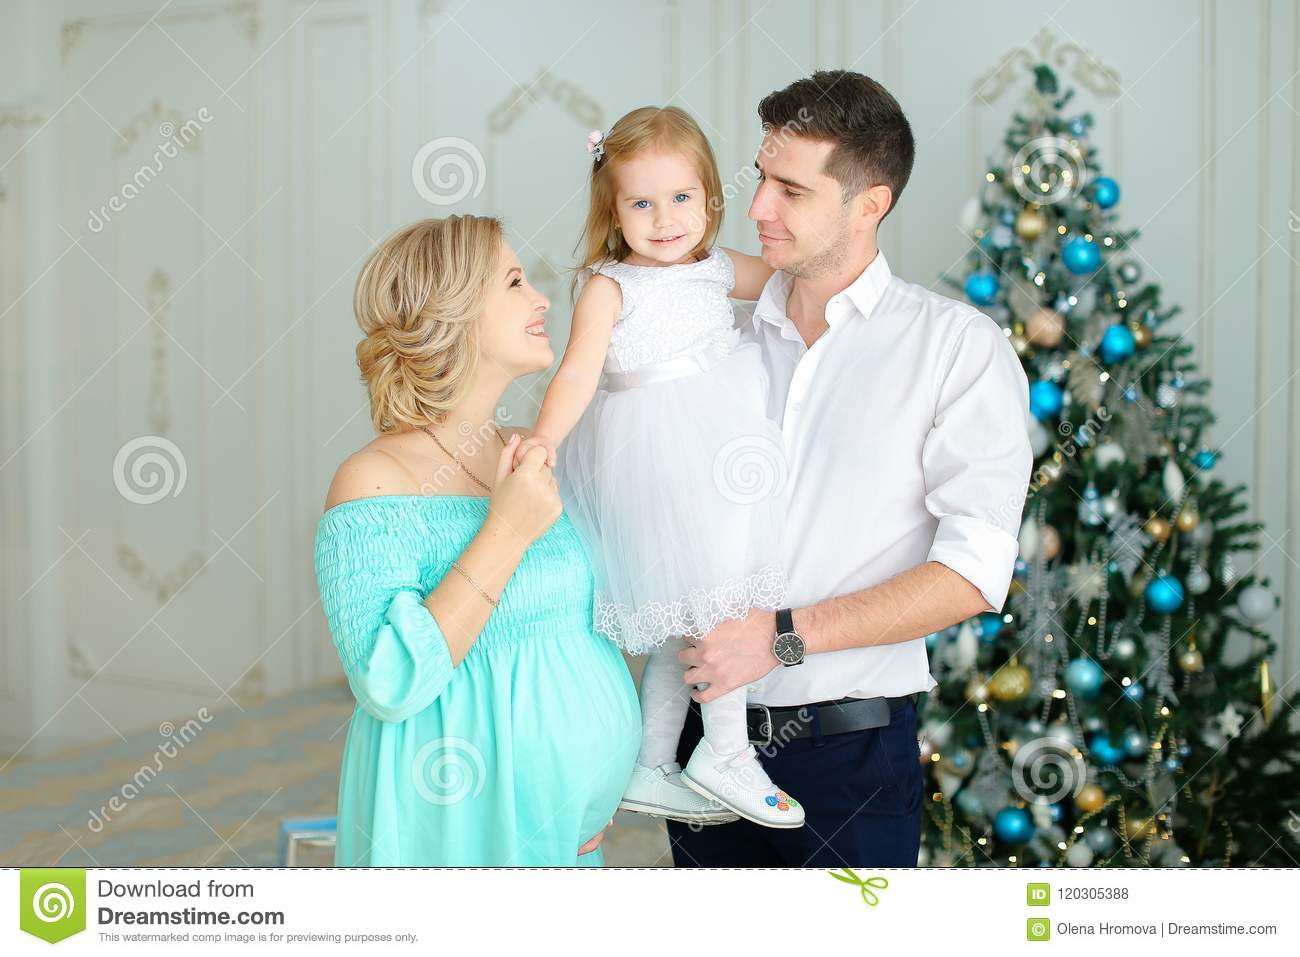 Pregnant european woman standing near husband keeping little daughter near Christmas tree.